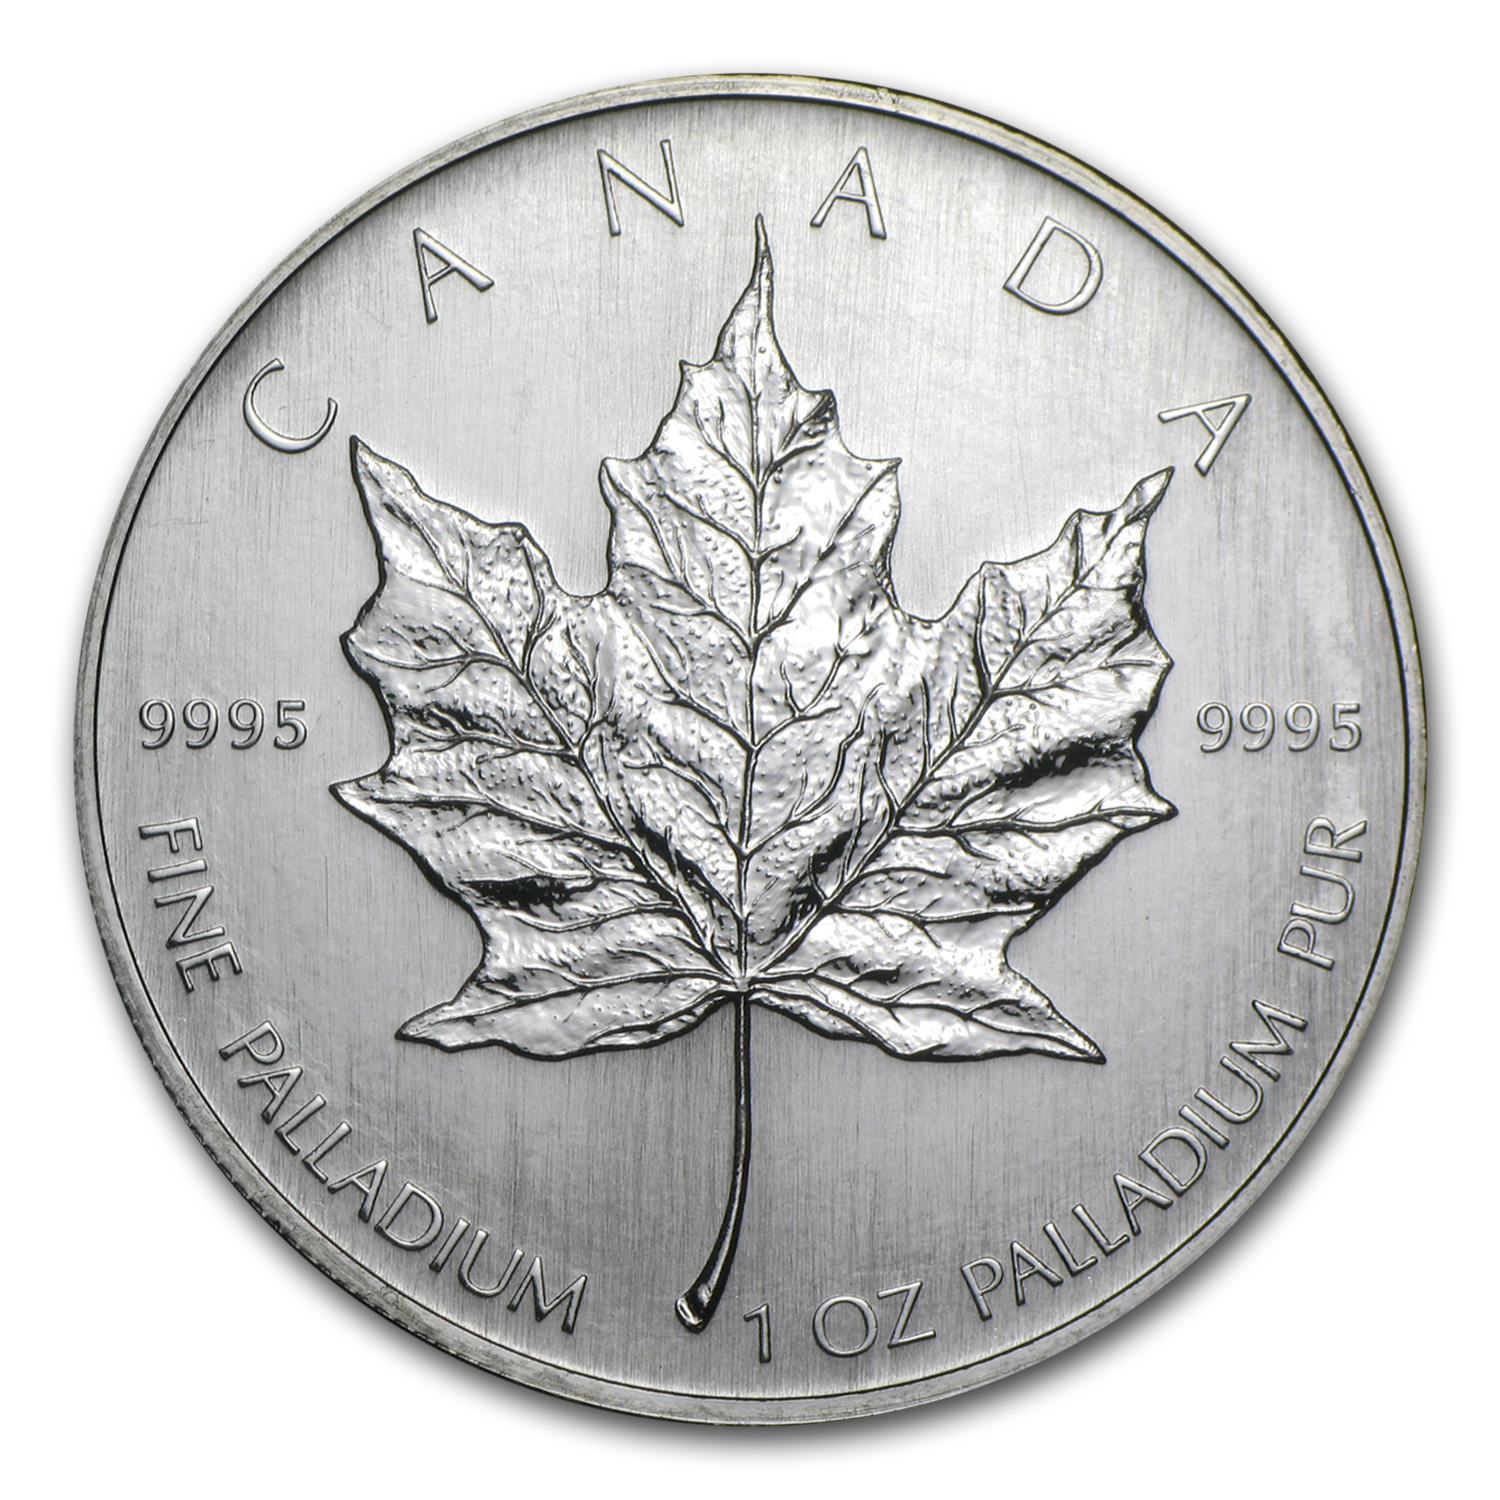 2006 Canada 1 oz Palladium Maple Leaf BU